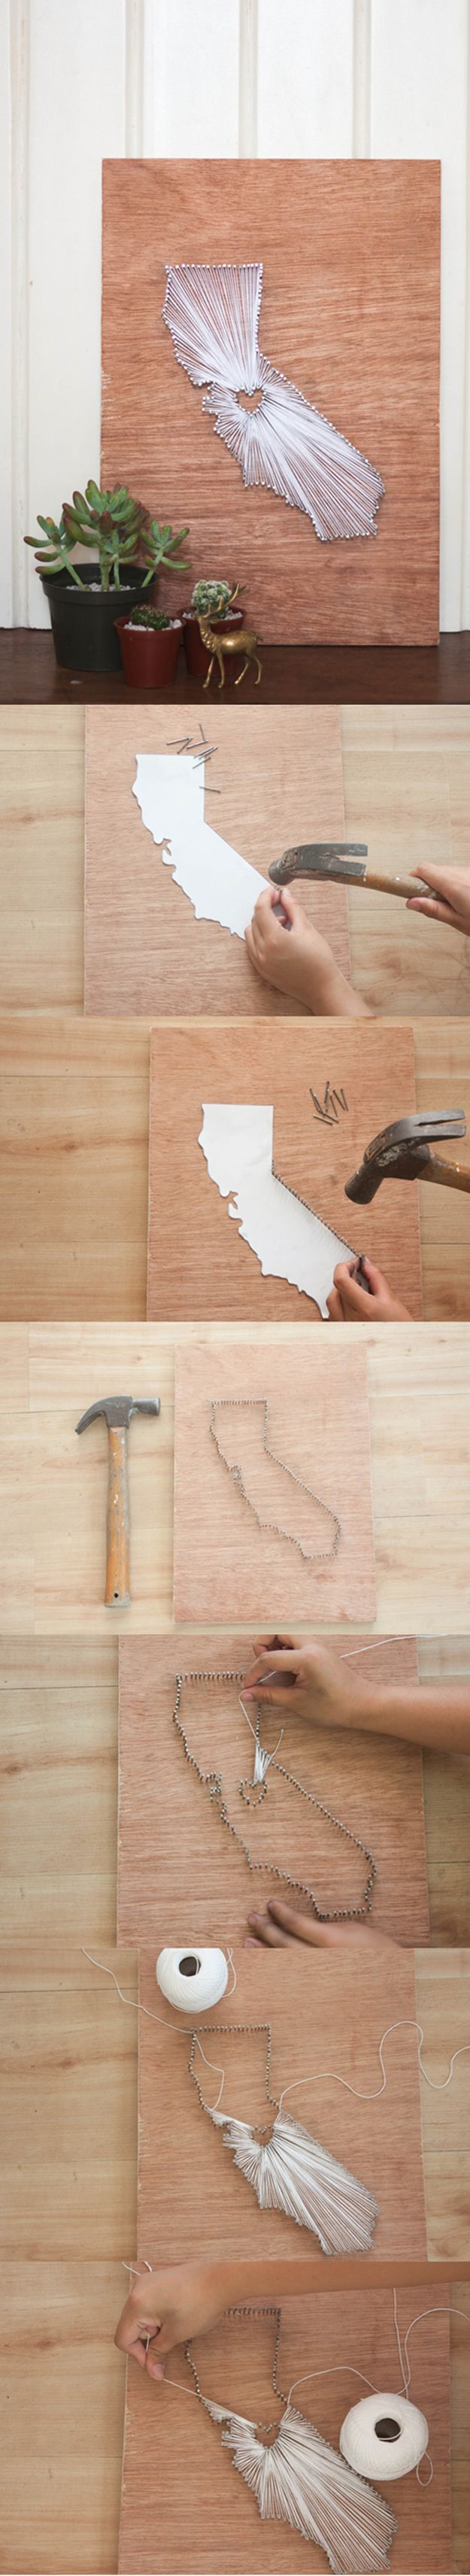 Cool DIY State String Art   Simple and Inexpensive DIY Home Decor Signs and Projects by DIY Ready at  http://diyready.com/diy-home-decor-under-an-hour/